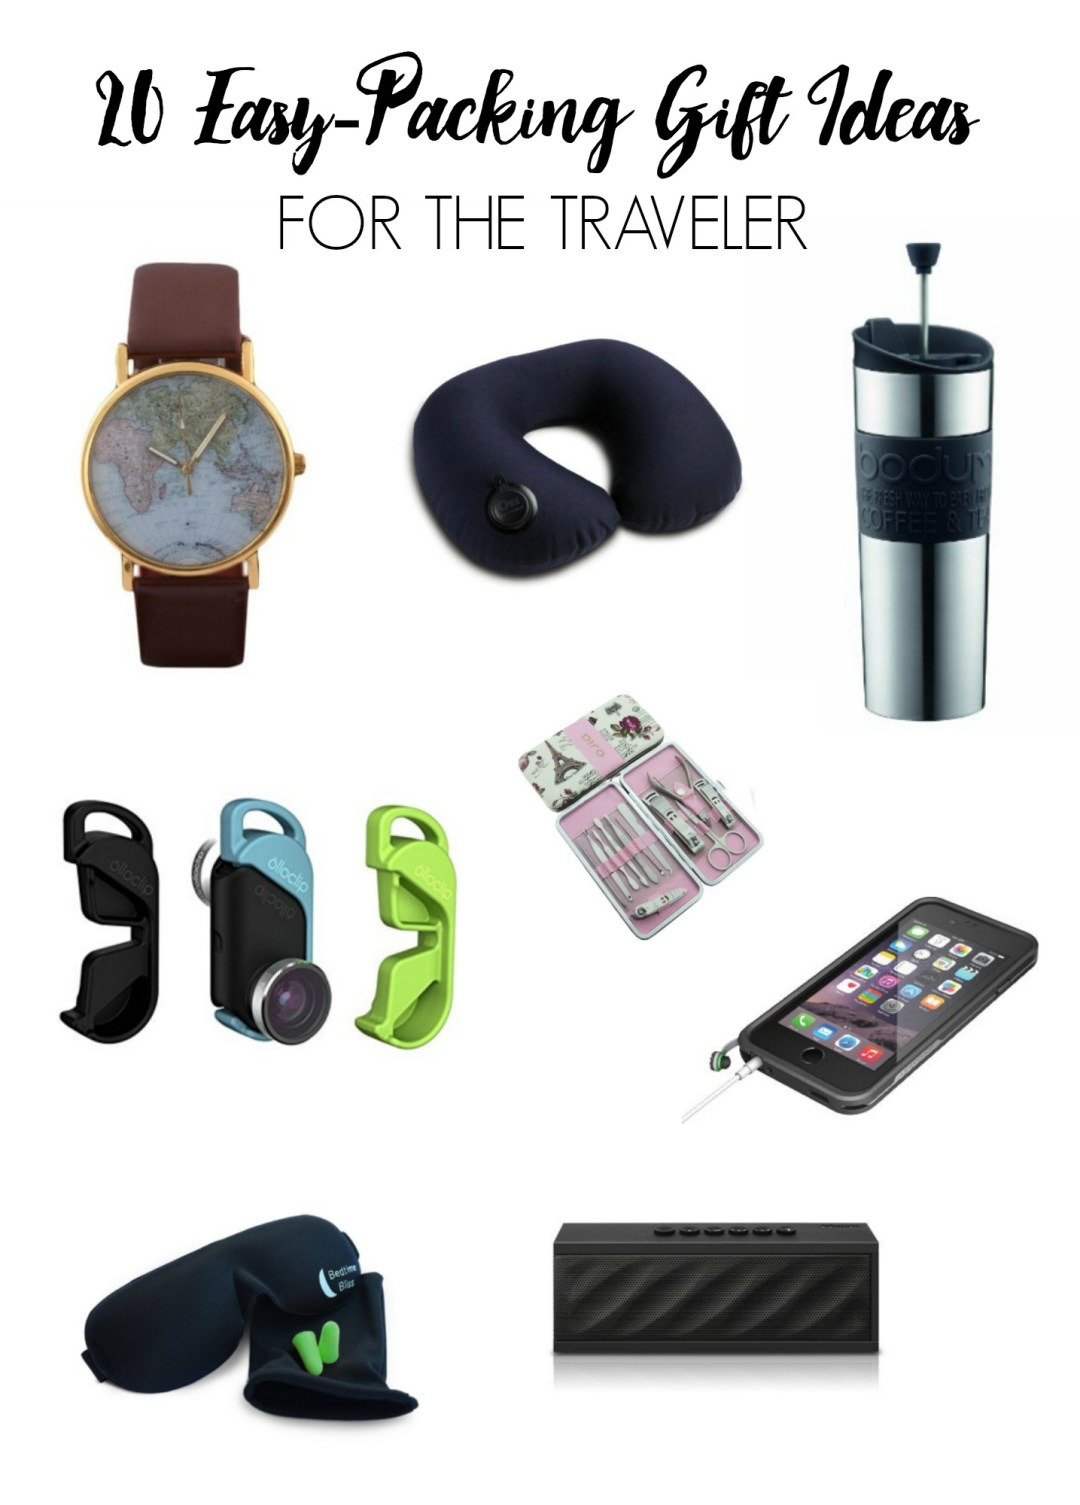 20 easy packing gift ideas for the traveler in your life for Good gifts for a traveler